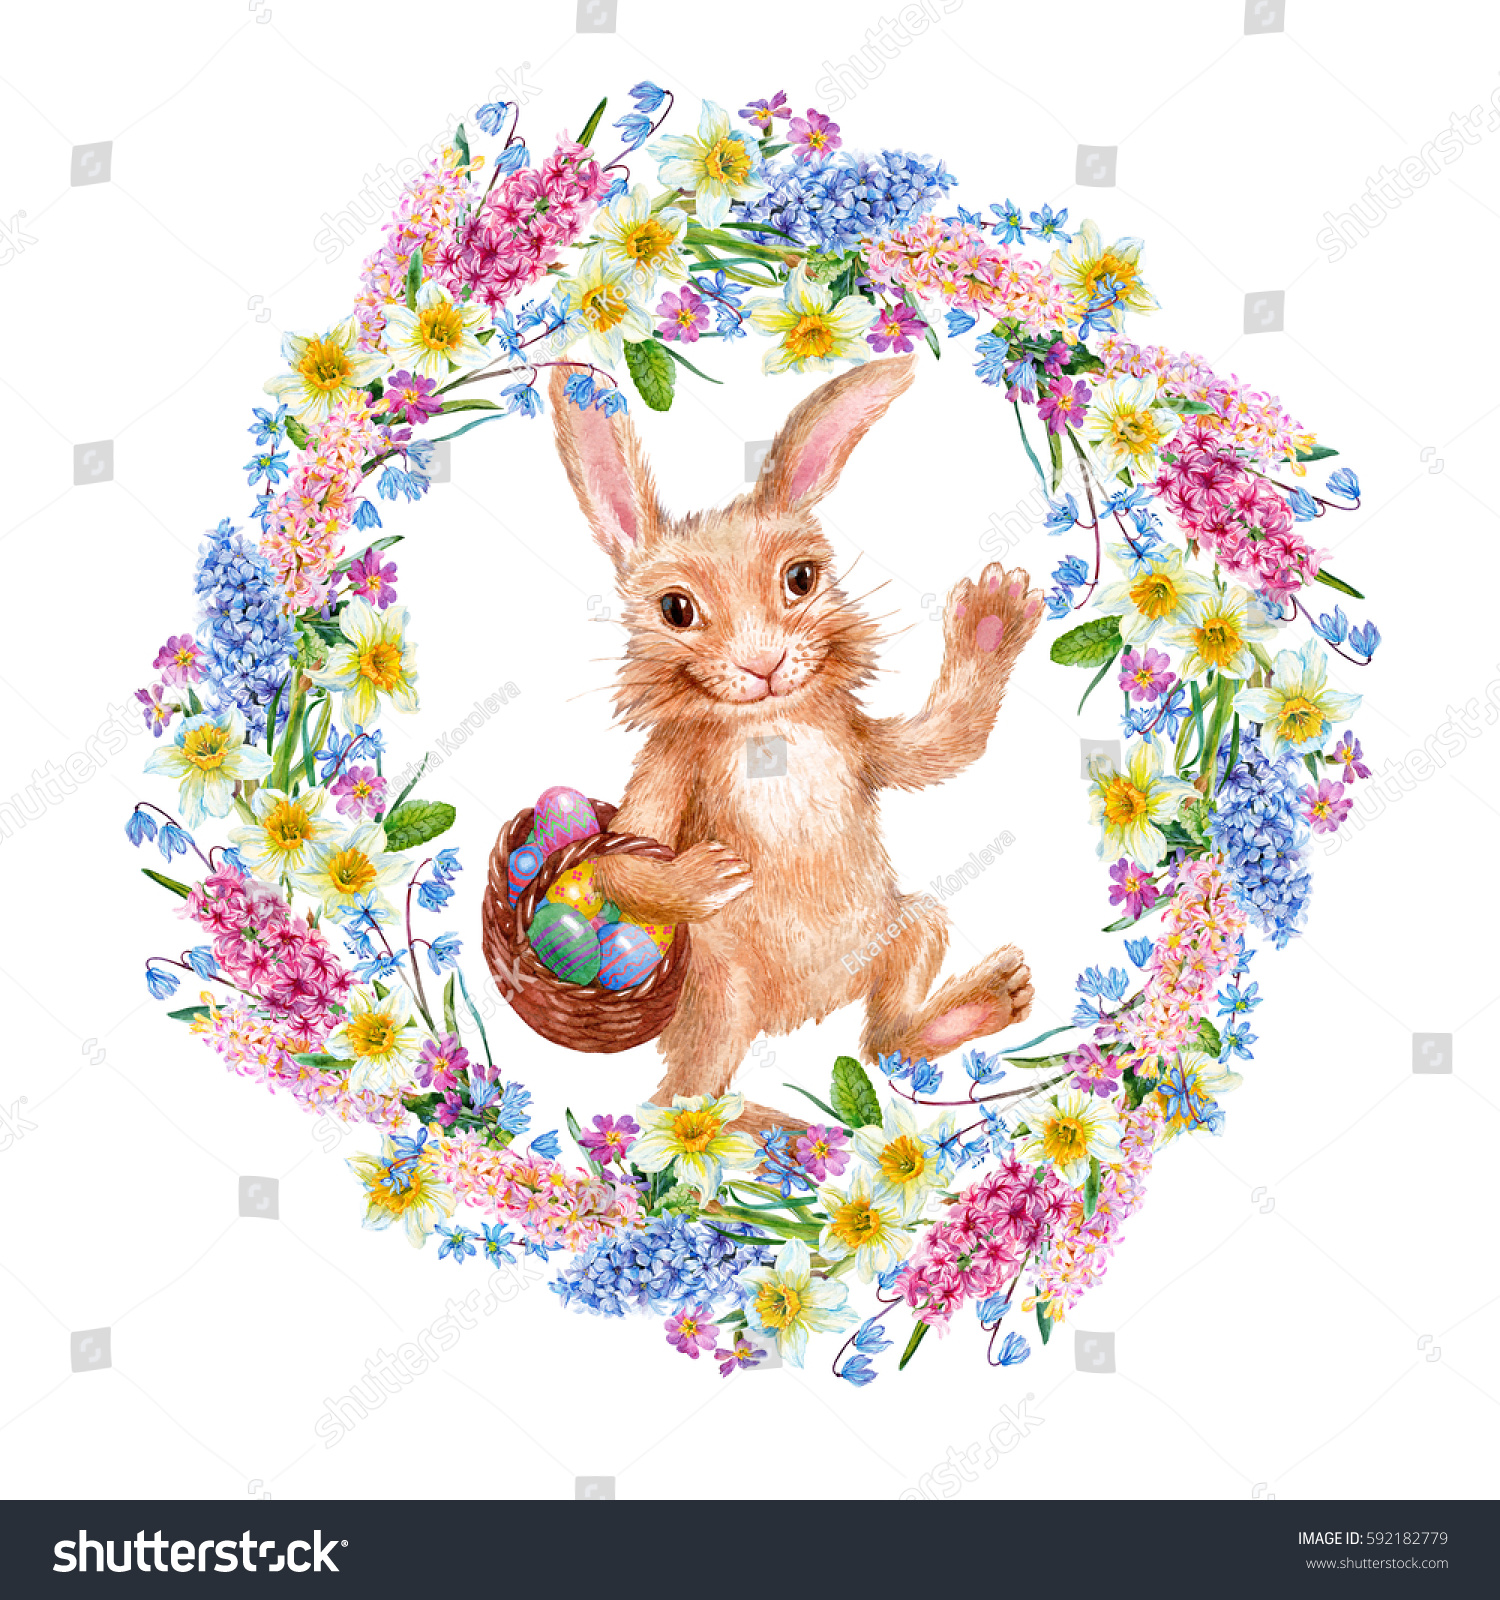 Rabbit Carrying A Basket Of Eggs Easter Wreath Of Spring Flowers